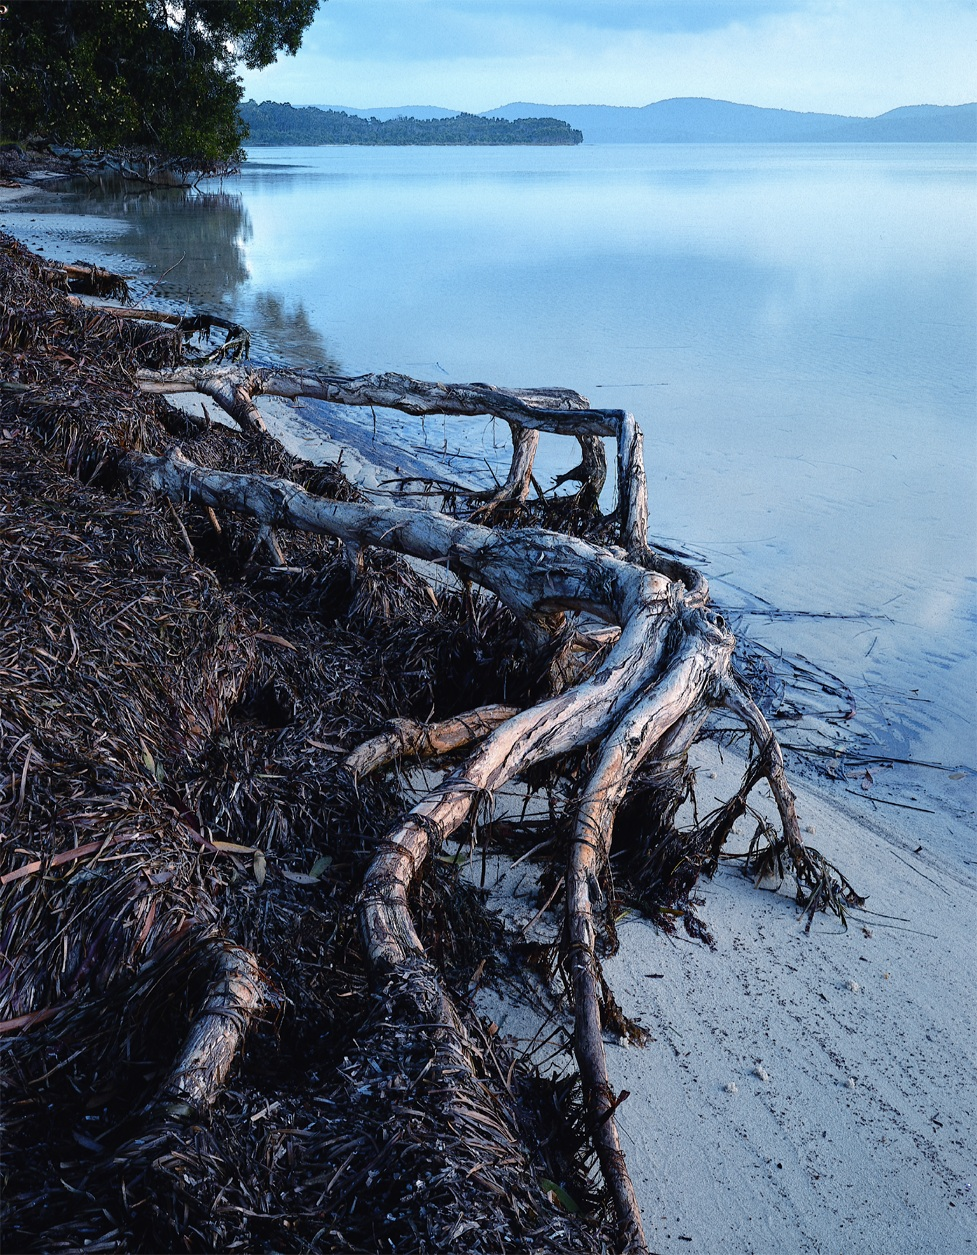 driftwood on lake shore.jpg